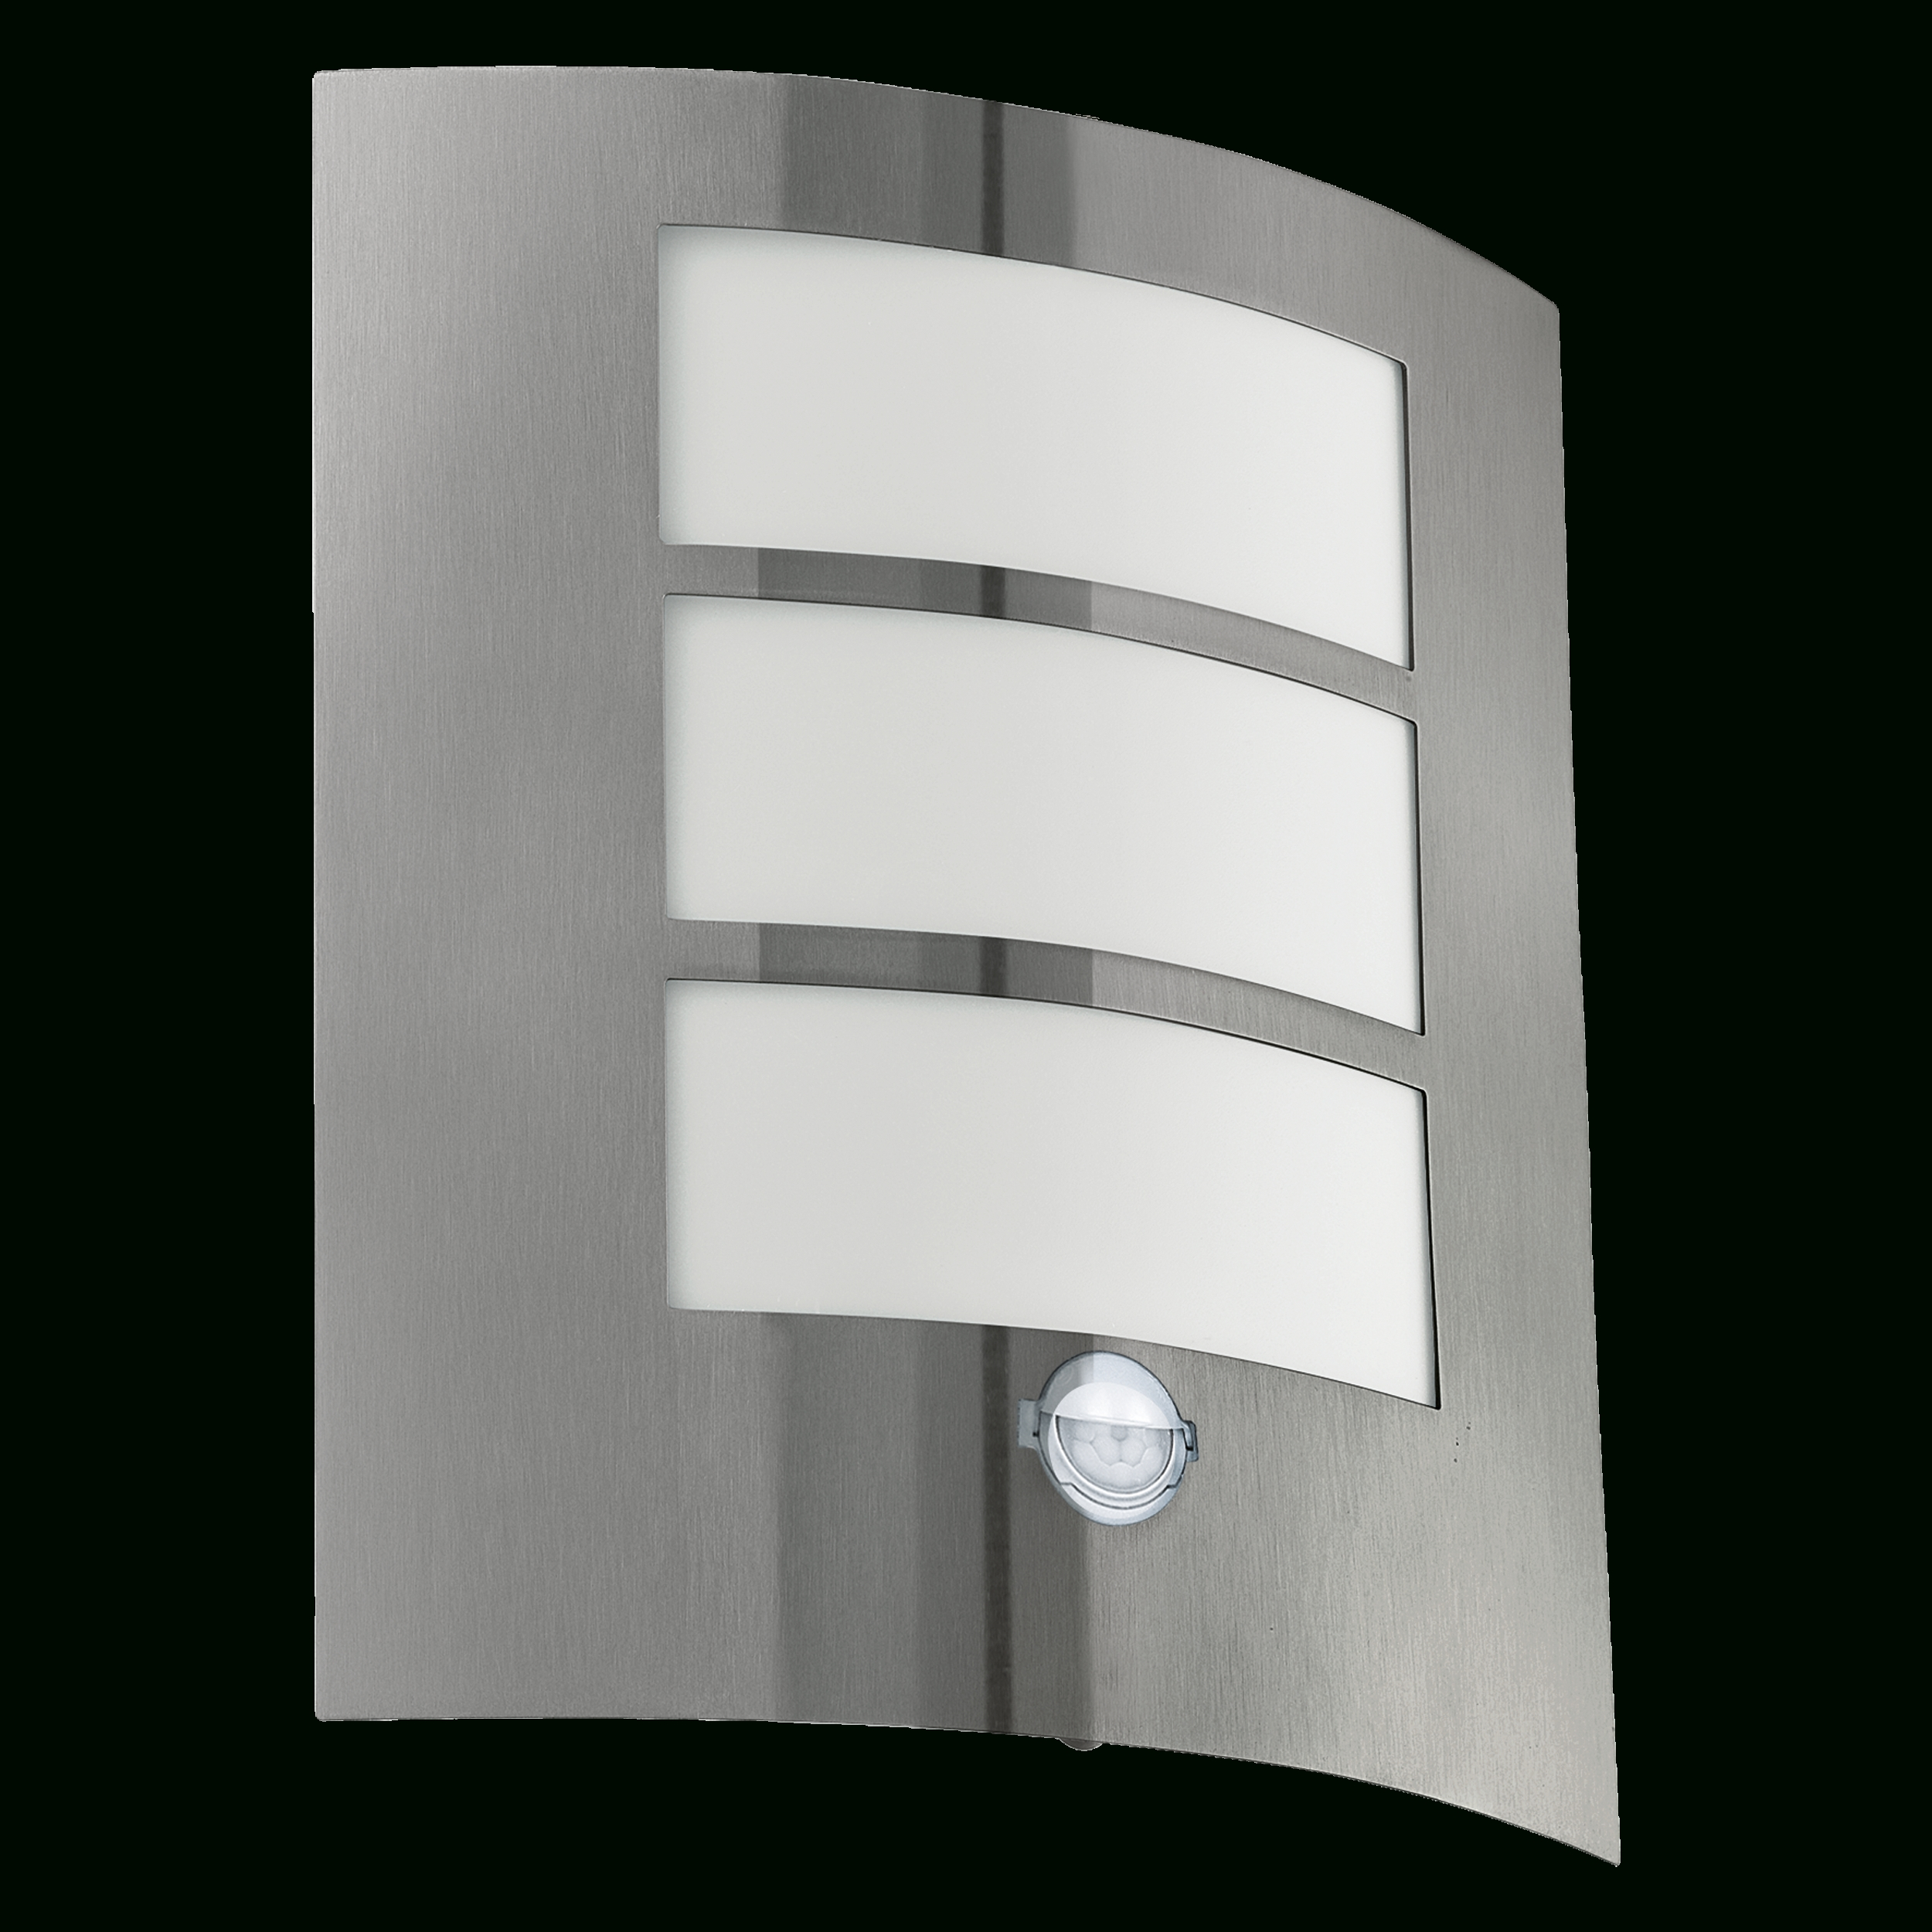 88142 / City / Outdoor Lighting / Main Collections / Products – Eglo Intended For Eglo Outdoor Lighting (View 13 of 15)